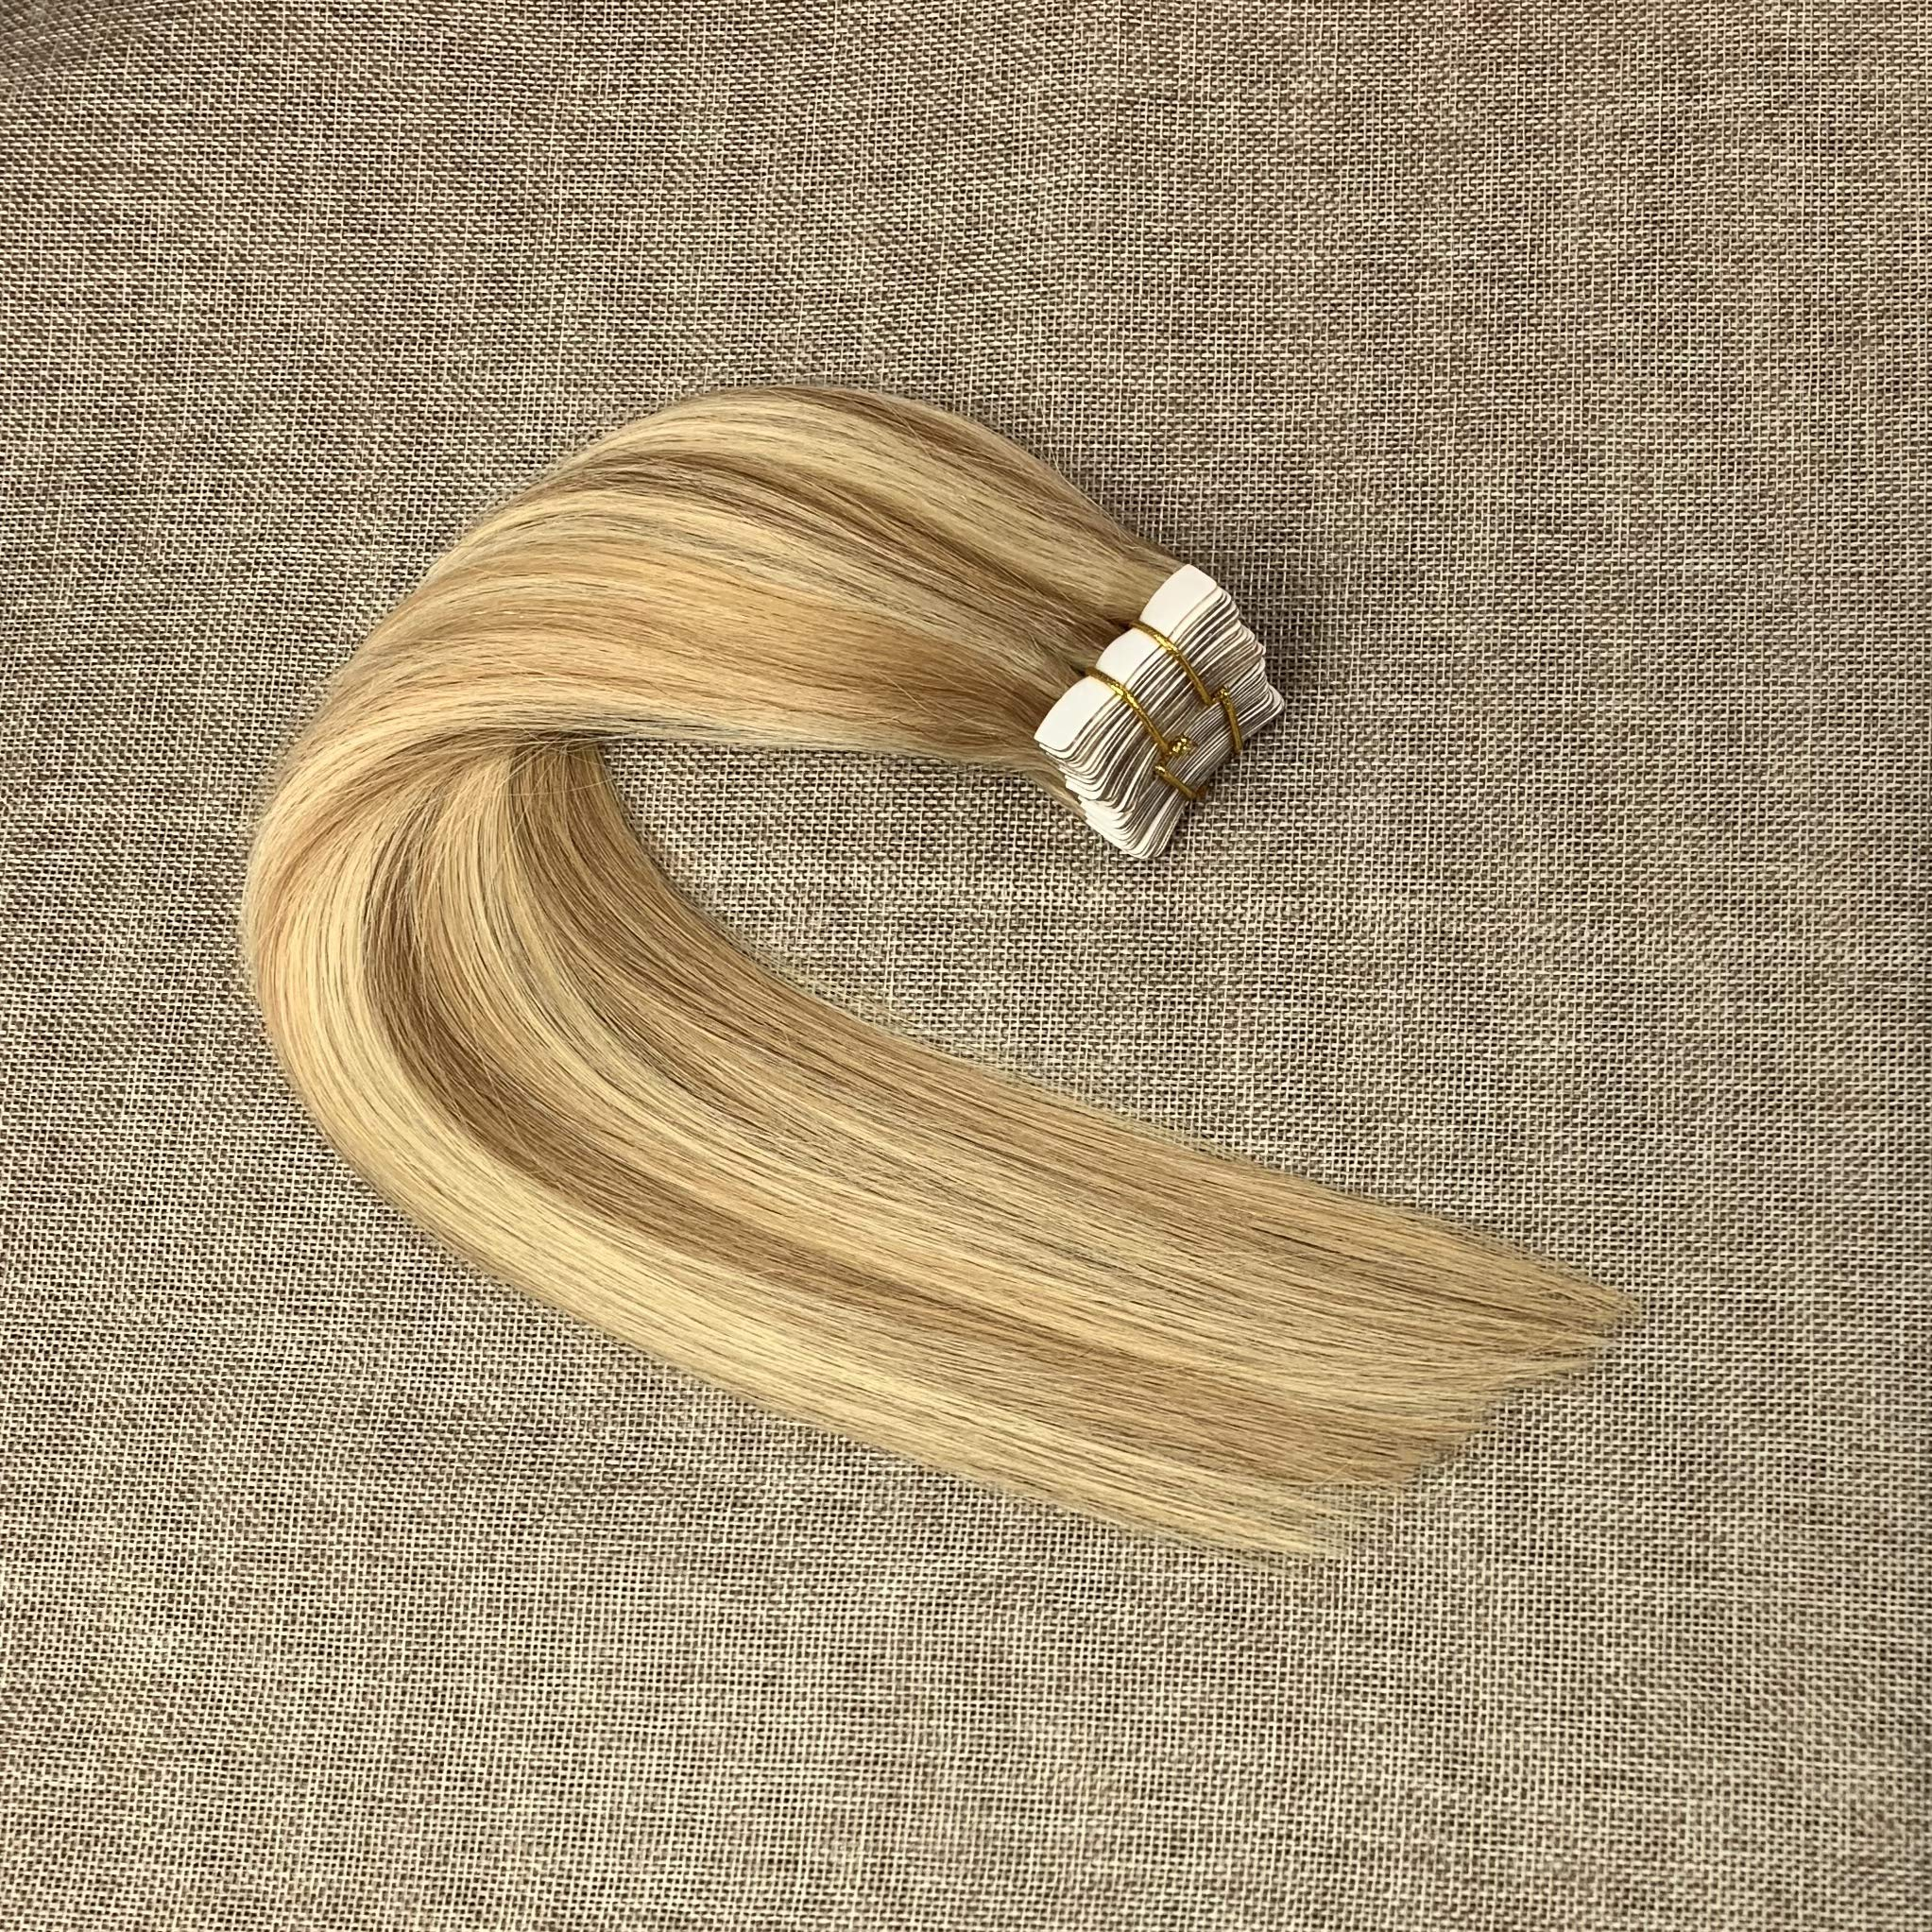 Komorebi #27/613 Honey Blonde And Bleach Blonde-20Inch Skin Weft Professional Hair Extensions Ombre Tape in Extensions Two-Town Colors 20Pcs 40 Gram Remy Hair Tape in Extensions